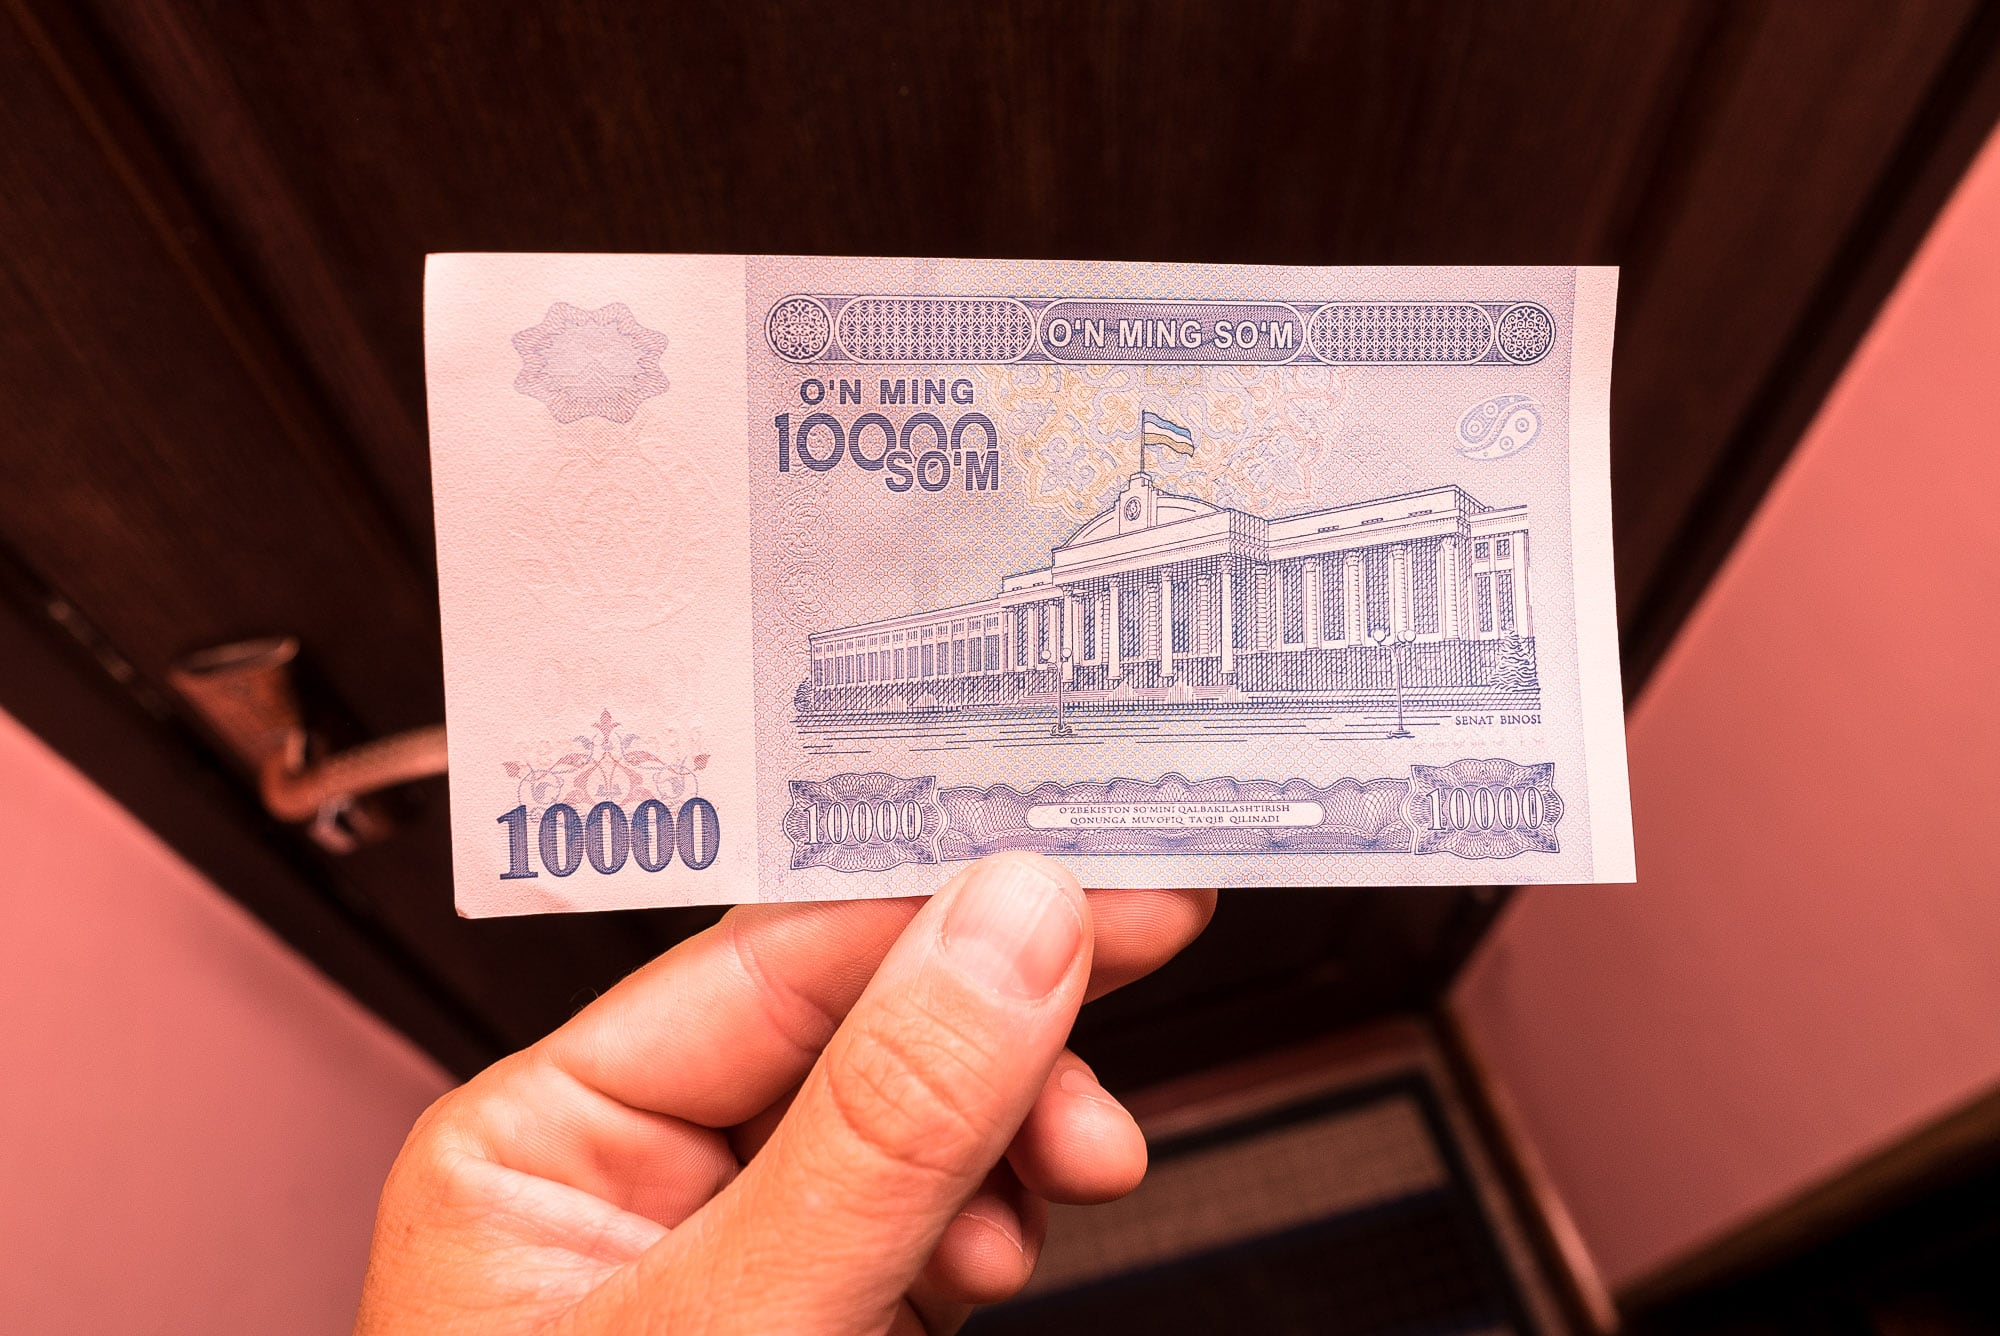 new 10000 som note back